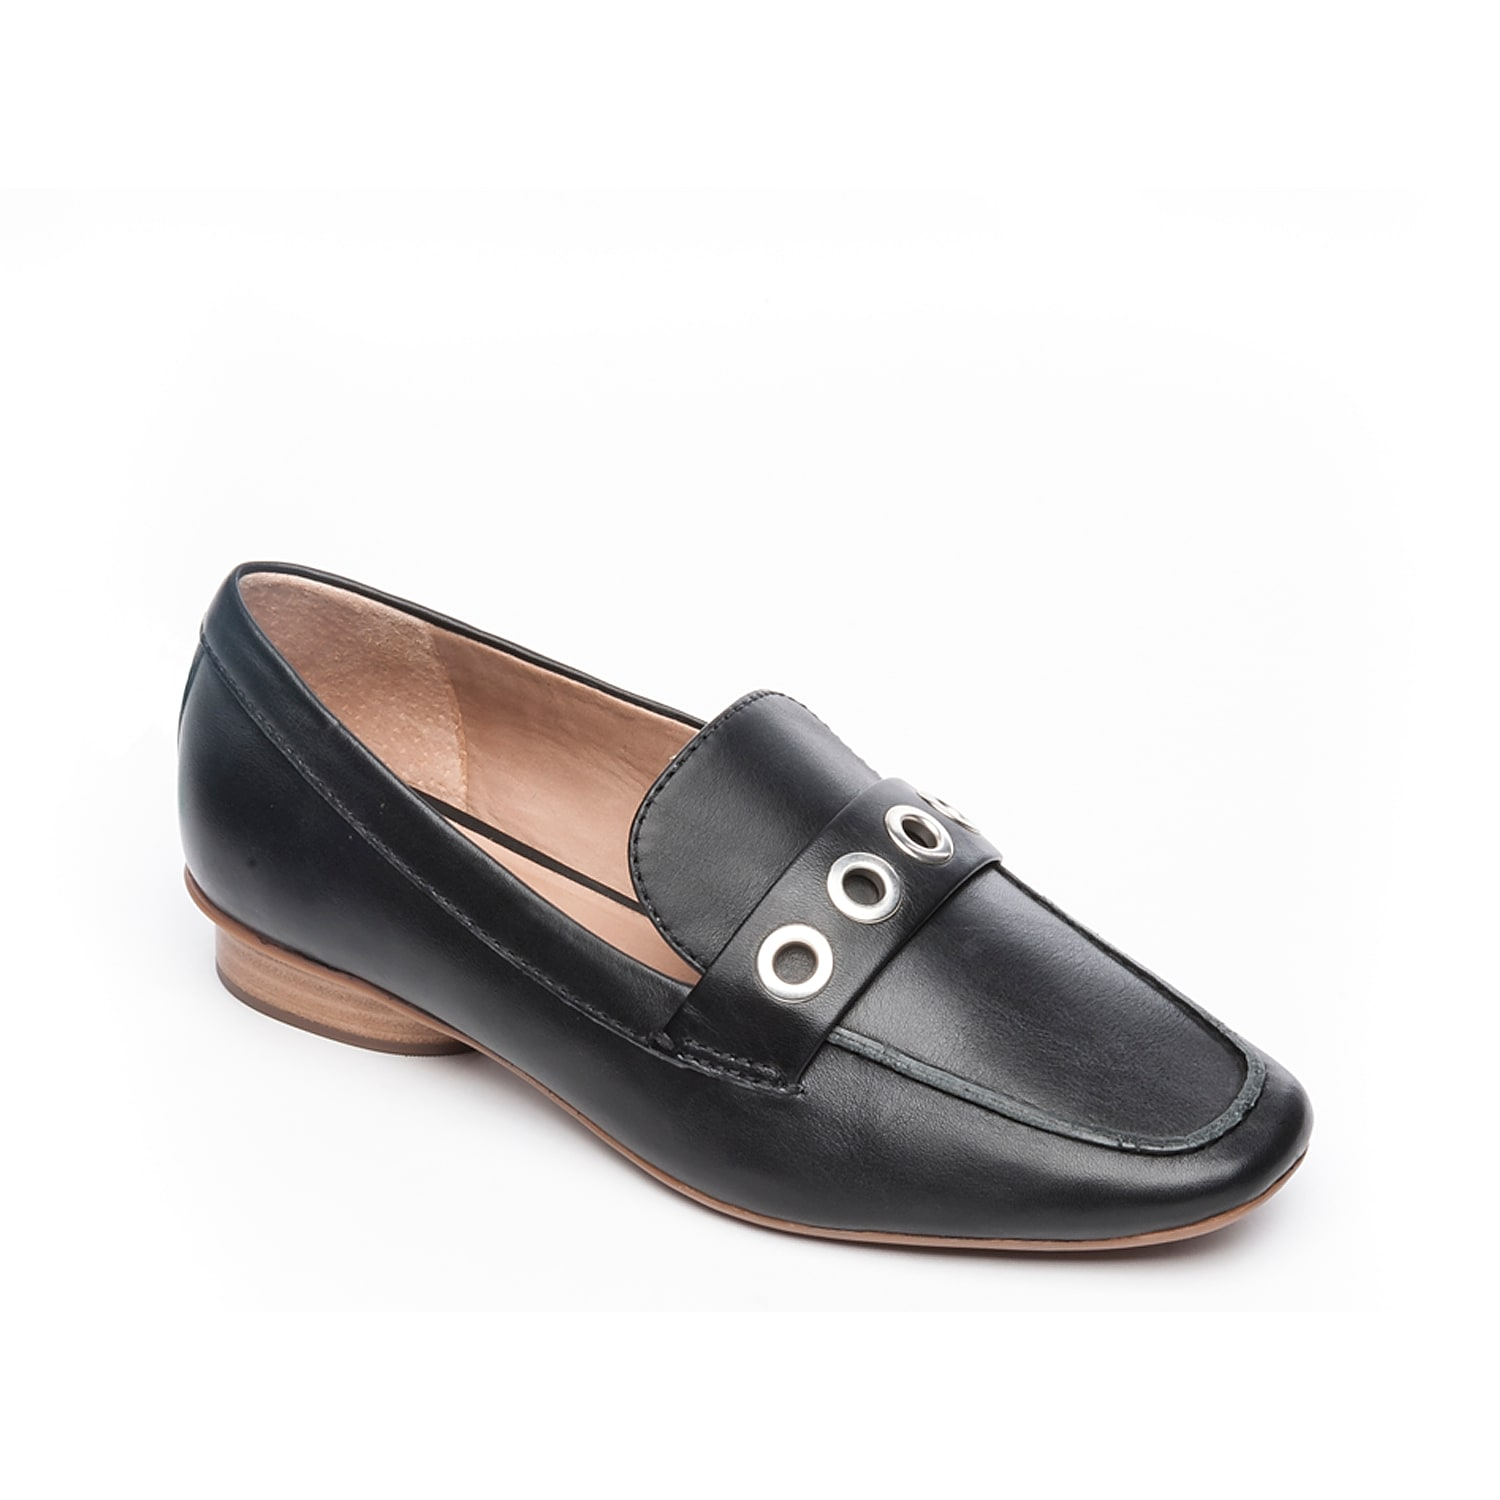 Provide a hint of edge to refined ensembles with the Jaden loafer from Bernardo. These slip-ons feature a round block heel and large grommet-accented strap that stand out with cropped slacks or an A-Line dress.